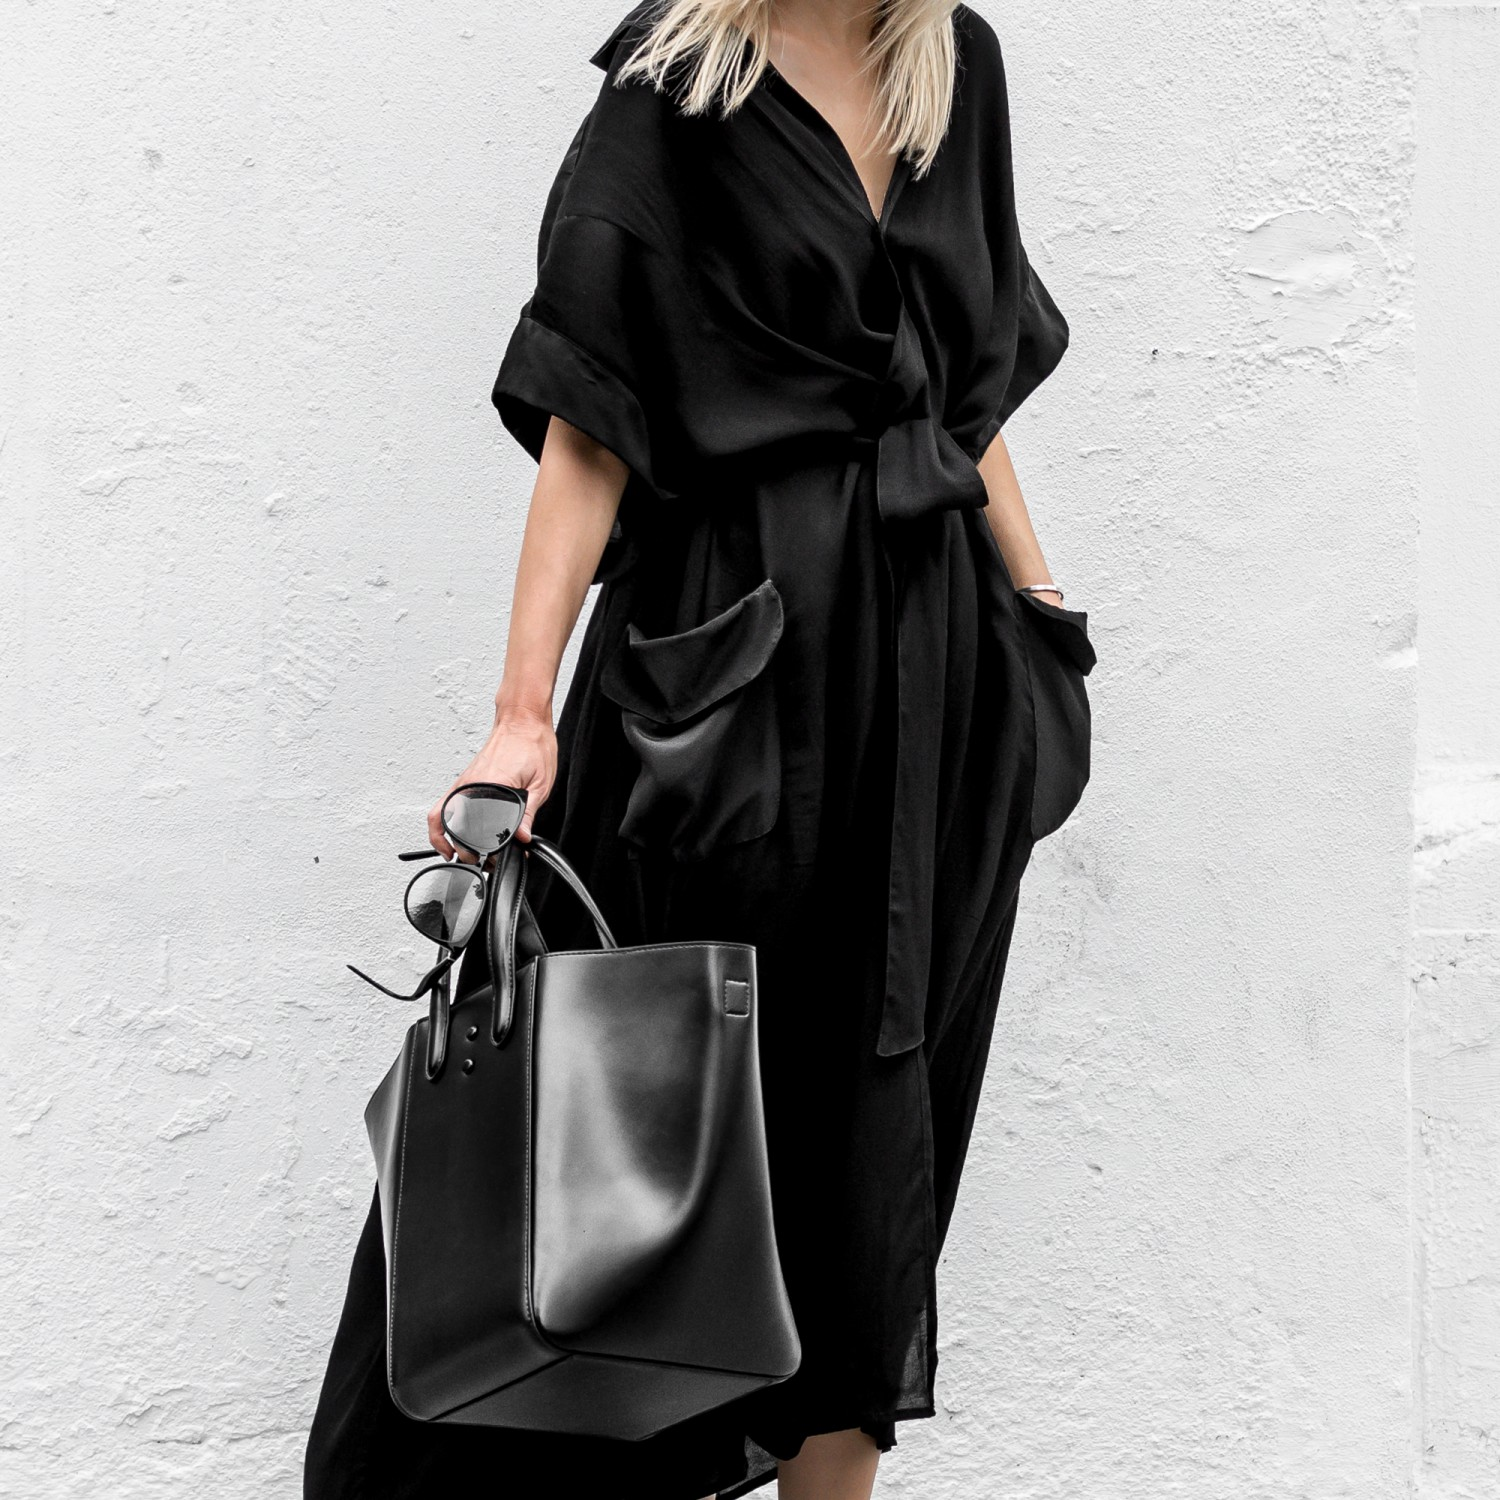 figtny.com | All Black Summer